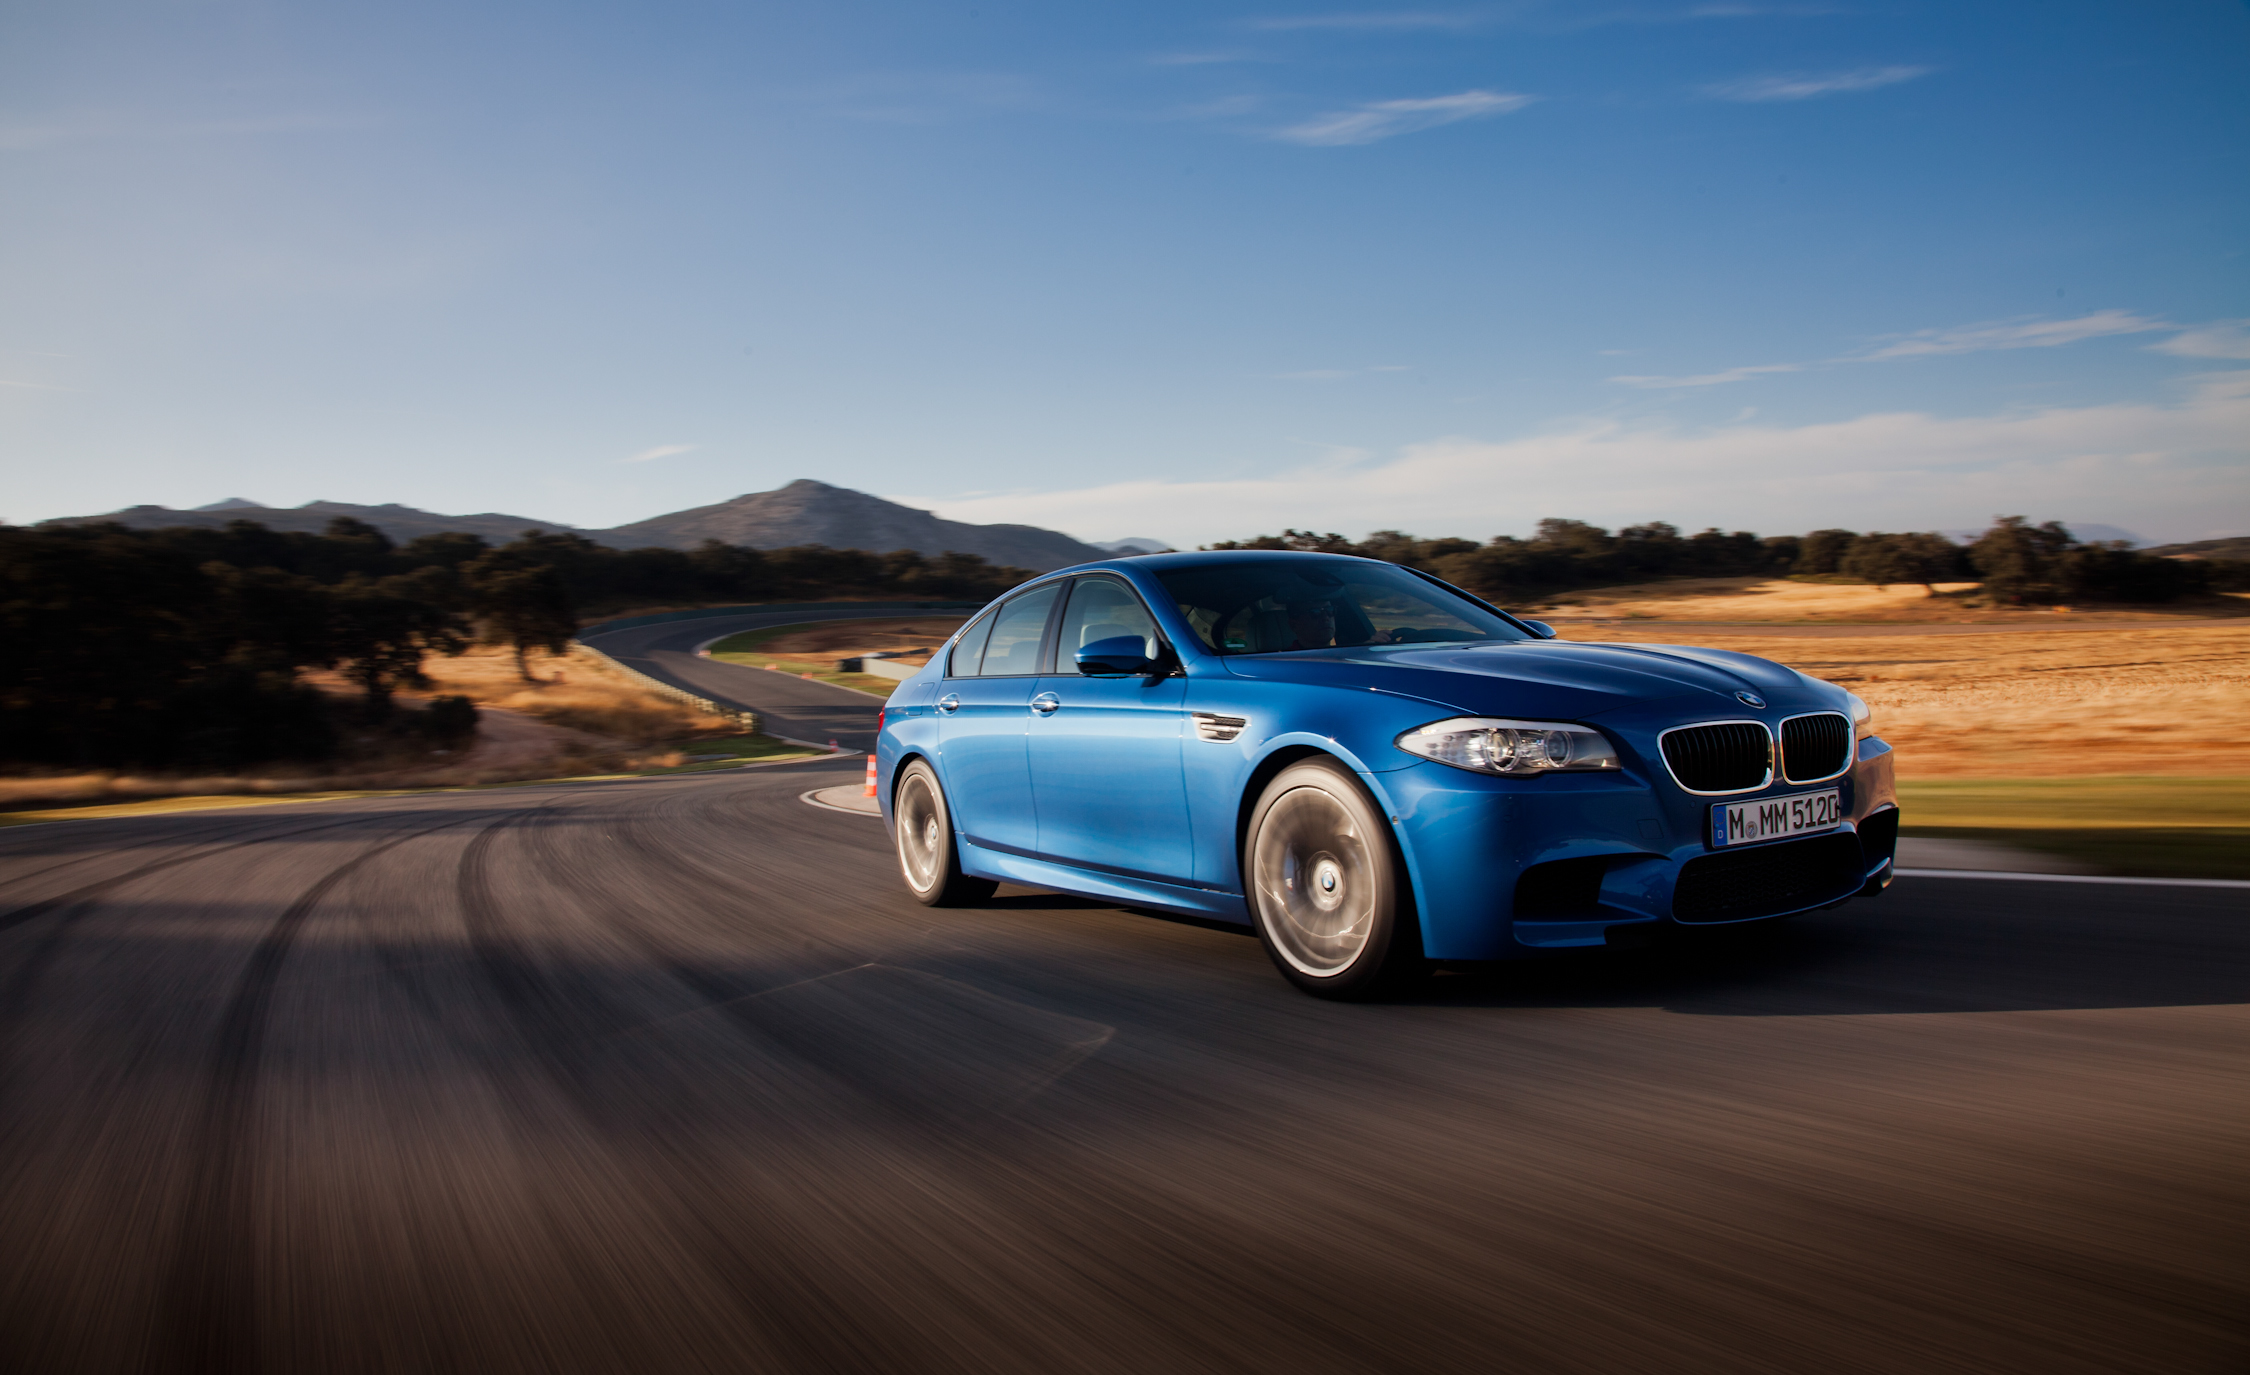 2013 BMW M5 Test Drive (View 20 of 22)